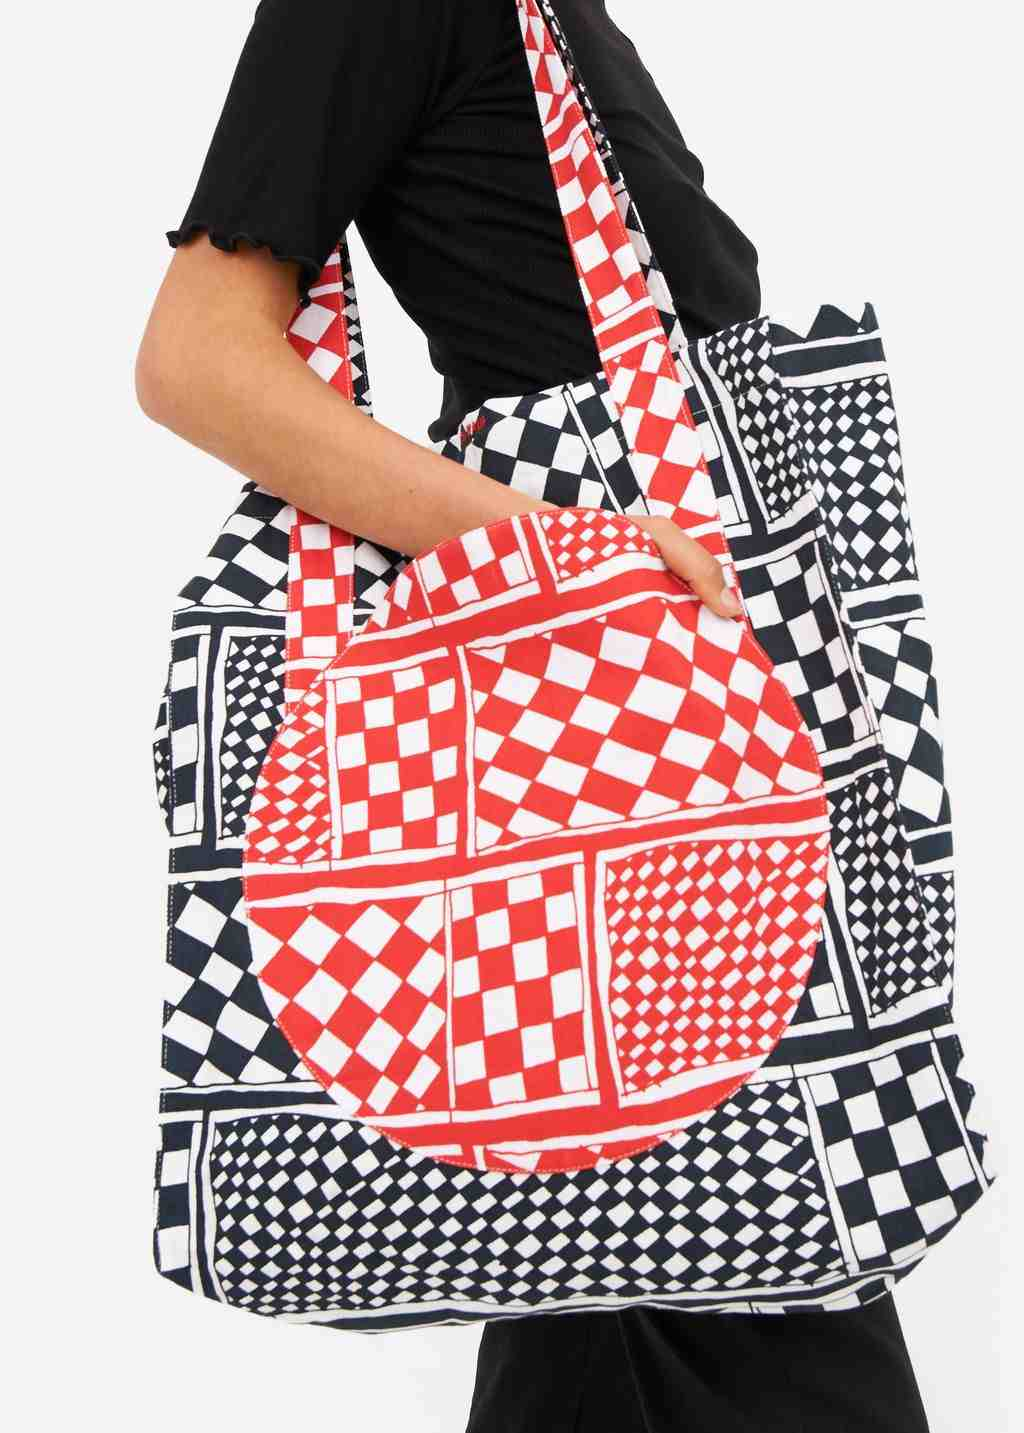 A woman holding a large printed tote bag